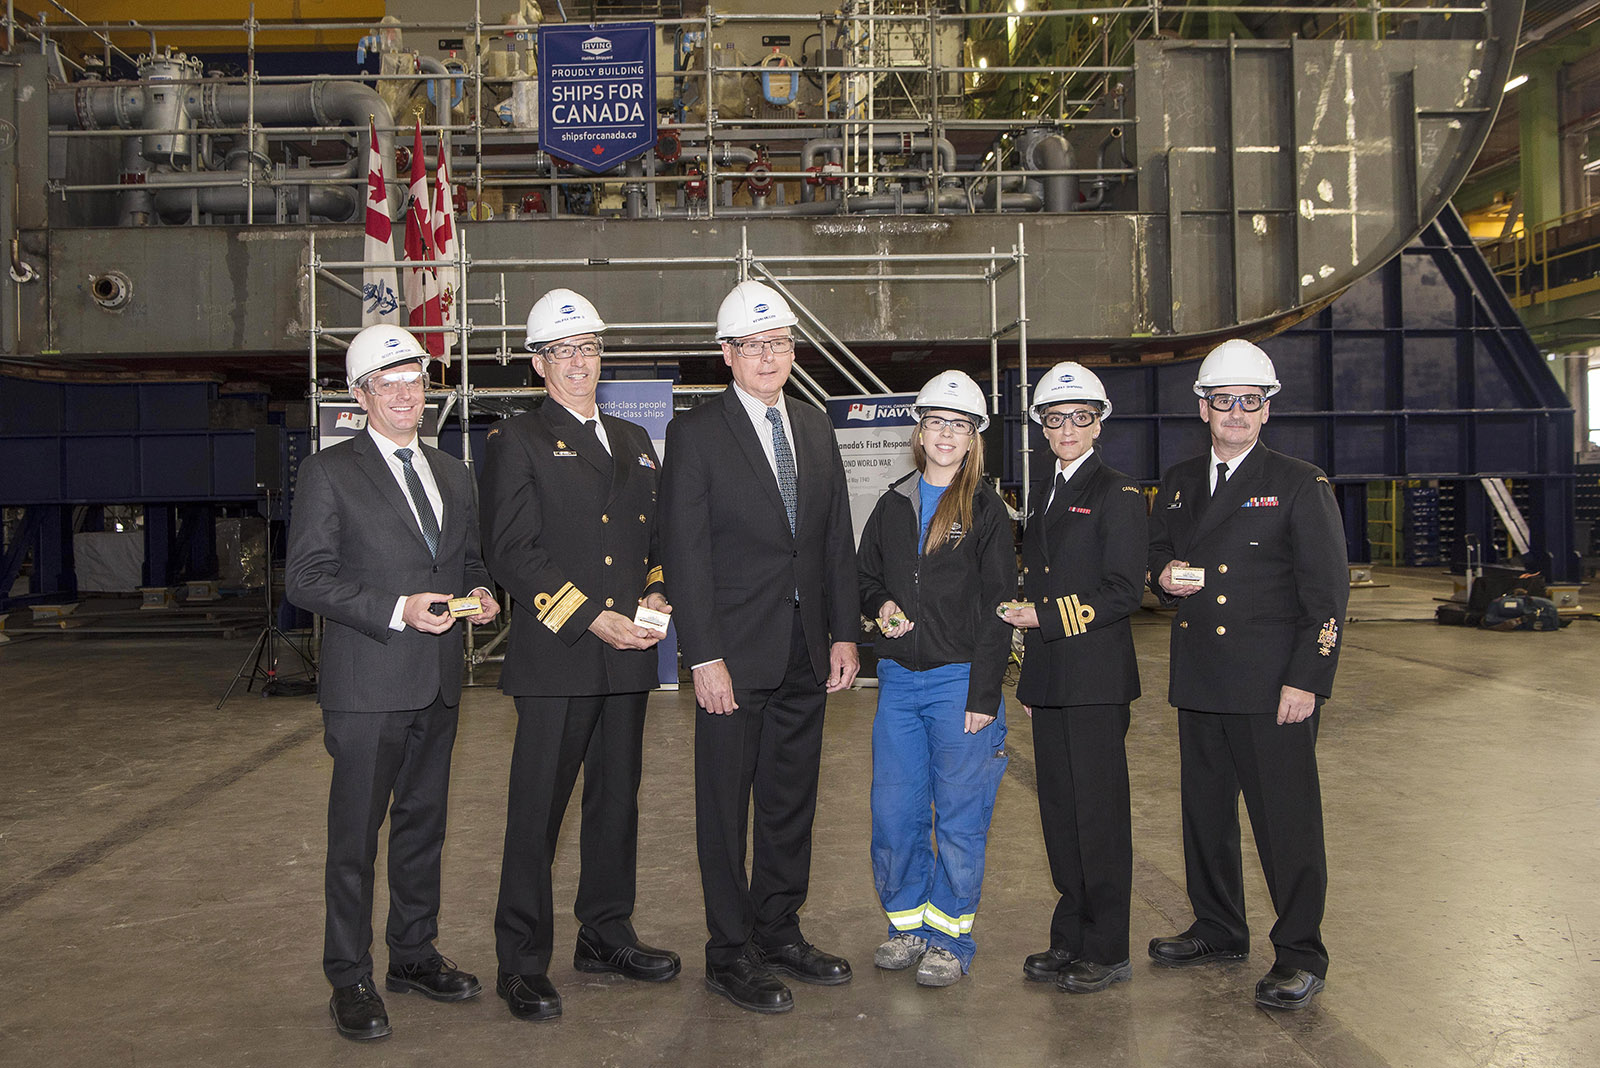 Members of the Royal Canadian Navy and Irving Shipbuilding mark the traditional keel-laying ceremony for the second Arctic and Offshore Patrol Vessel, the future HMCS Margaret Brooke, at Halifax Shipyard on May 29, 2017. From left, Scott Jamieson, Irving Shipbuilding; Rear-Admiral John Newton, Commander of Maritime Forces Atlantic; Kevin McCoy, President of Irving Shipbuilding; Olivia Strowbridge, Production Work Lead, Irving Shipbuilding; Commander Michele Tessier, Commanding Officer (Designate) HMCS Margaret Brooke; and Chief Petty Officer 1st Class Pierre Auger, Maritime Forces Atlantic Formation Chief.